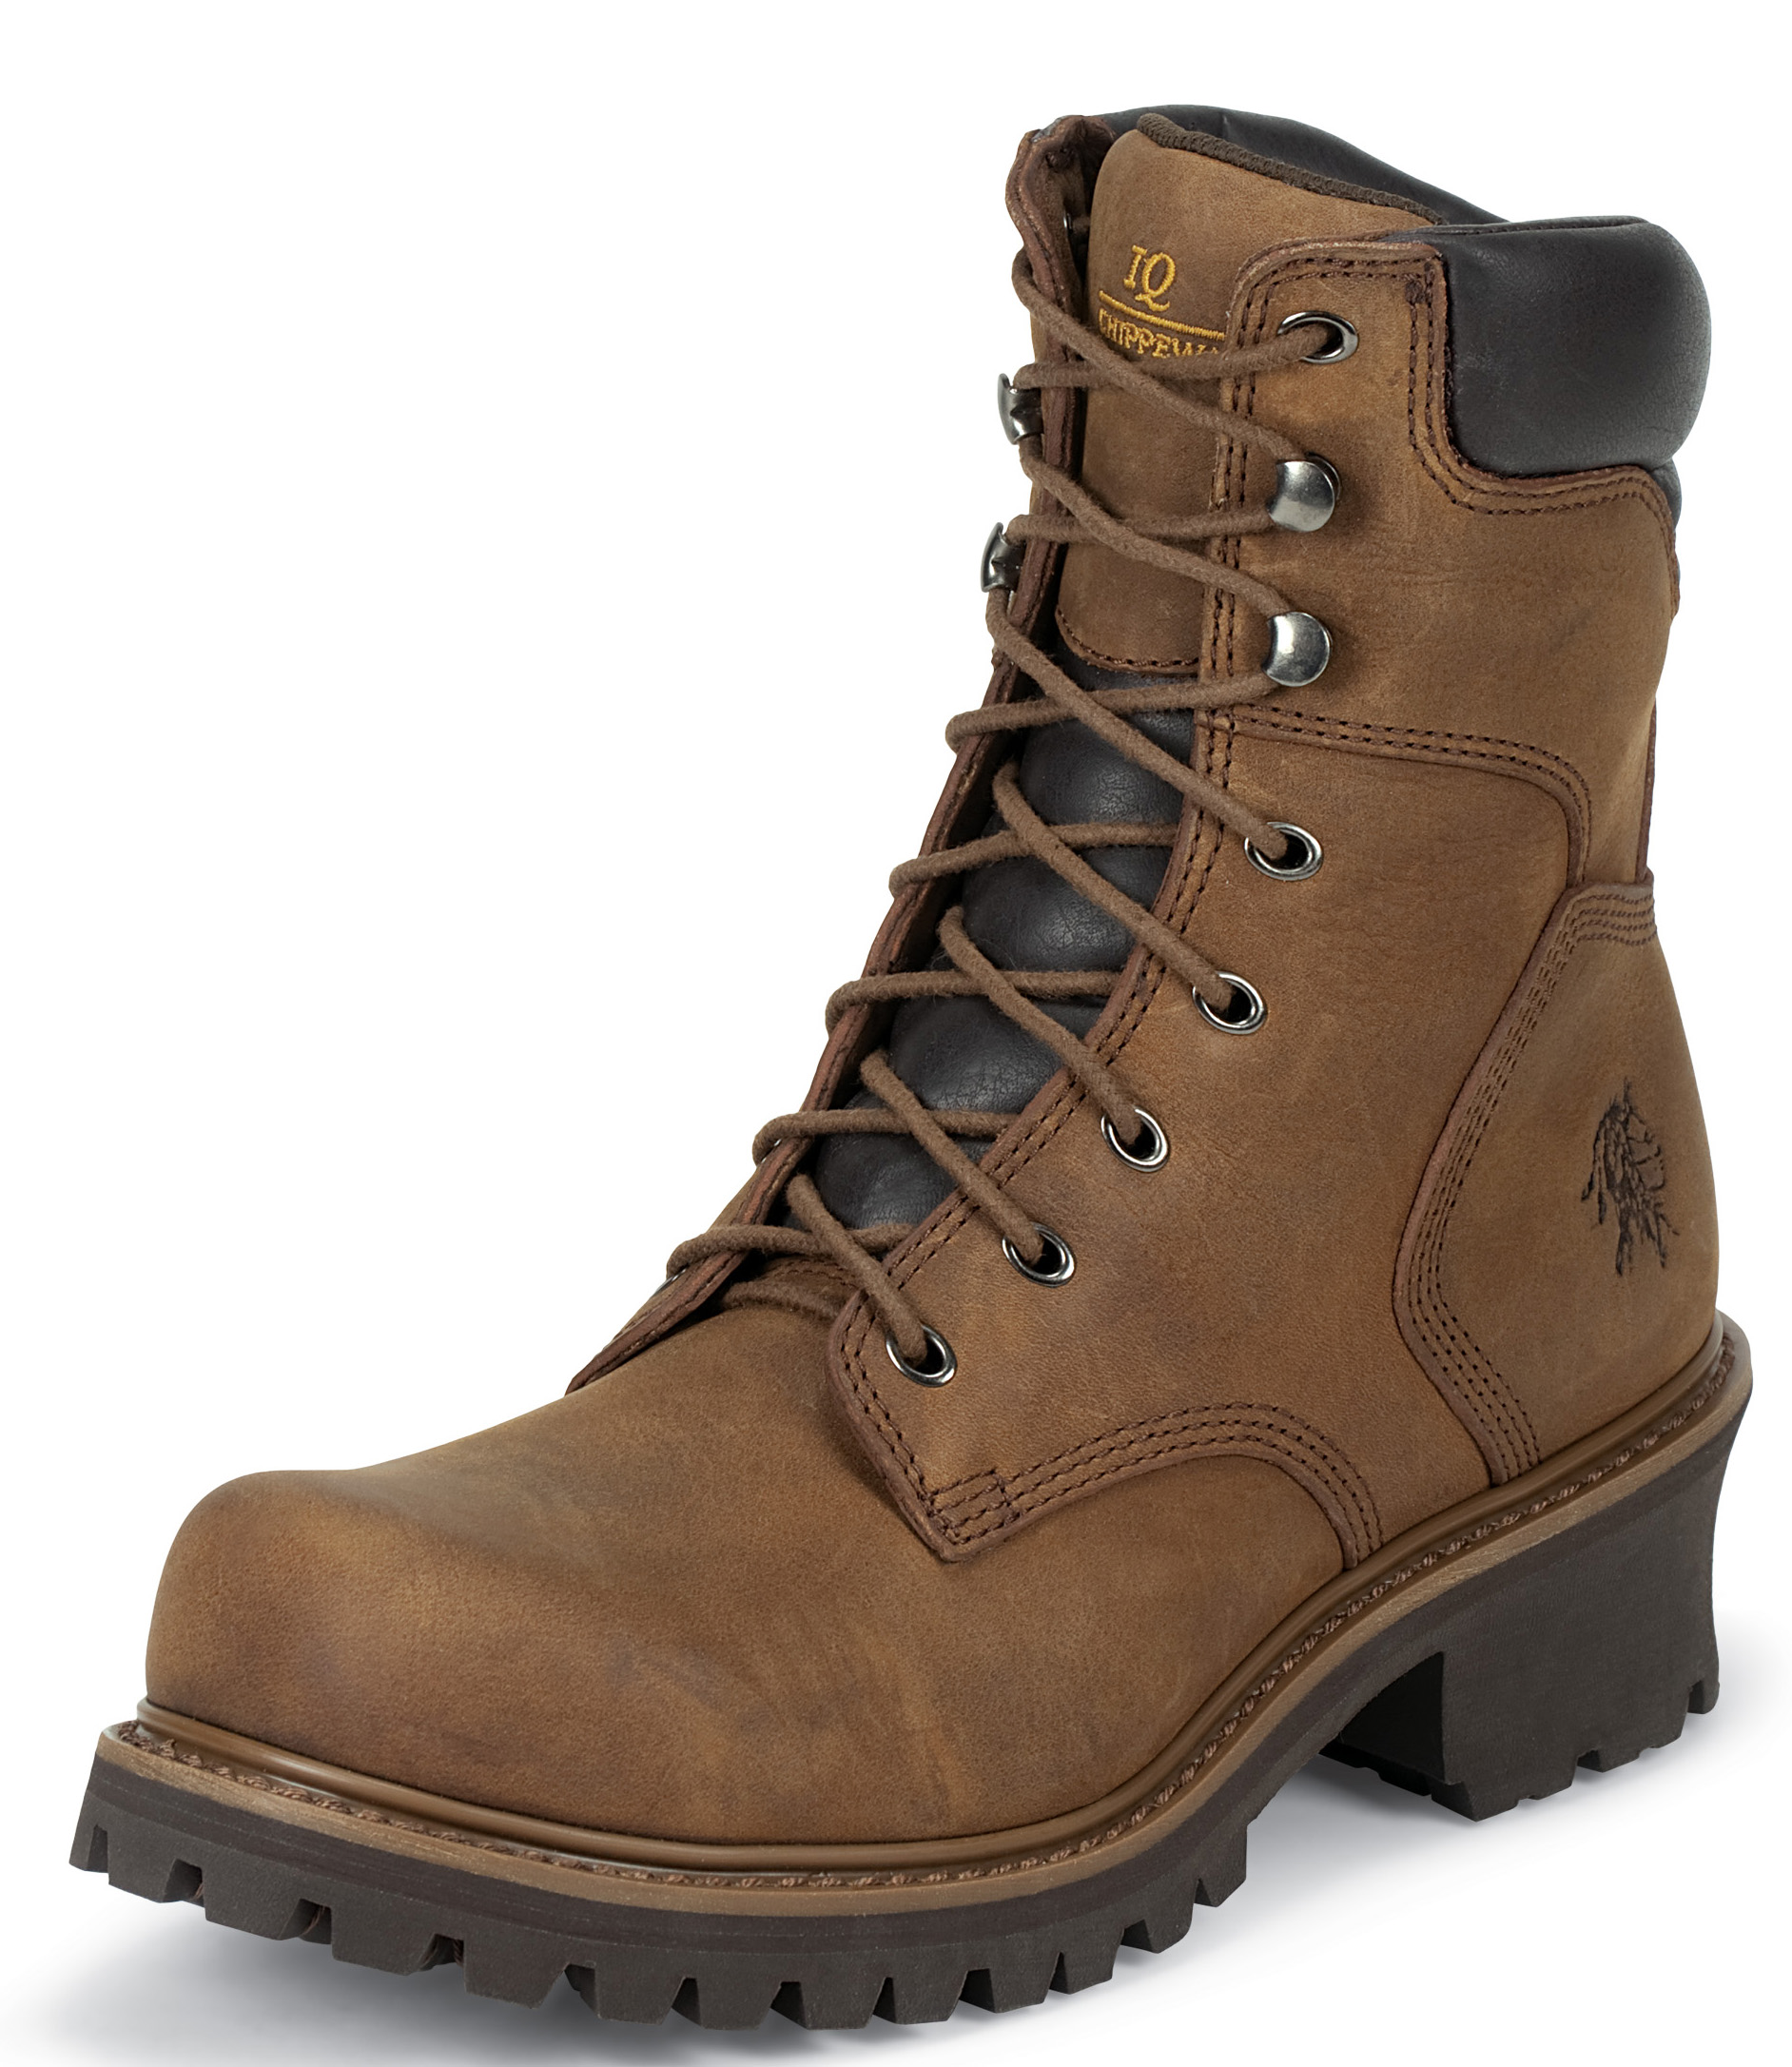 """Chippewa Men's 8"""" Insulated Boot Steel Toe Brown Leather 55025 (EE+) at Sears.com"""